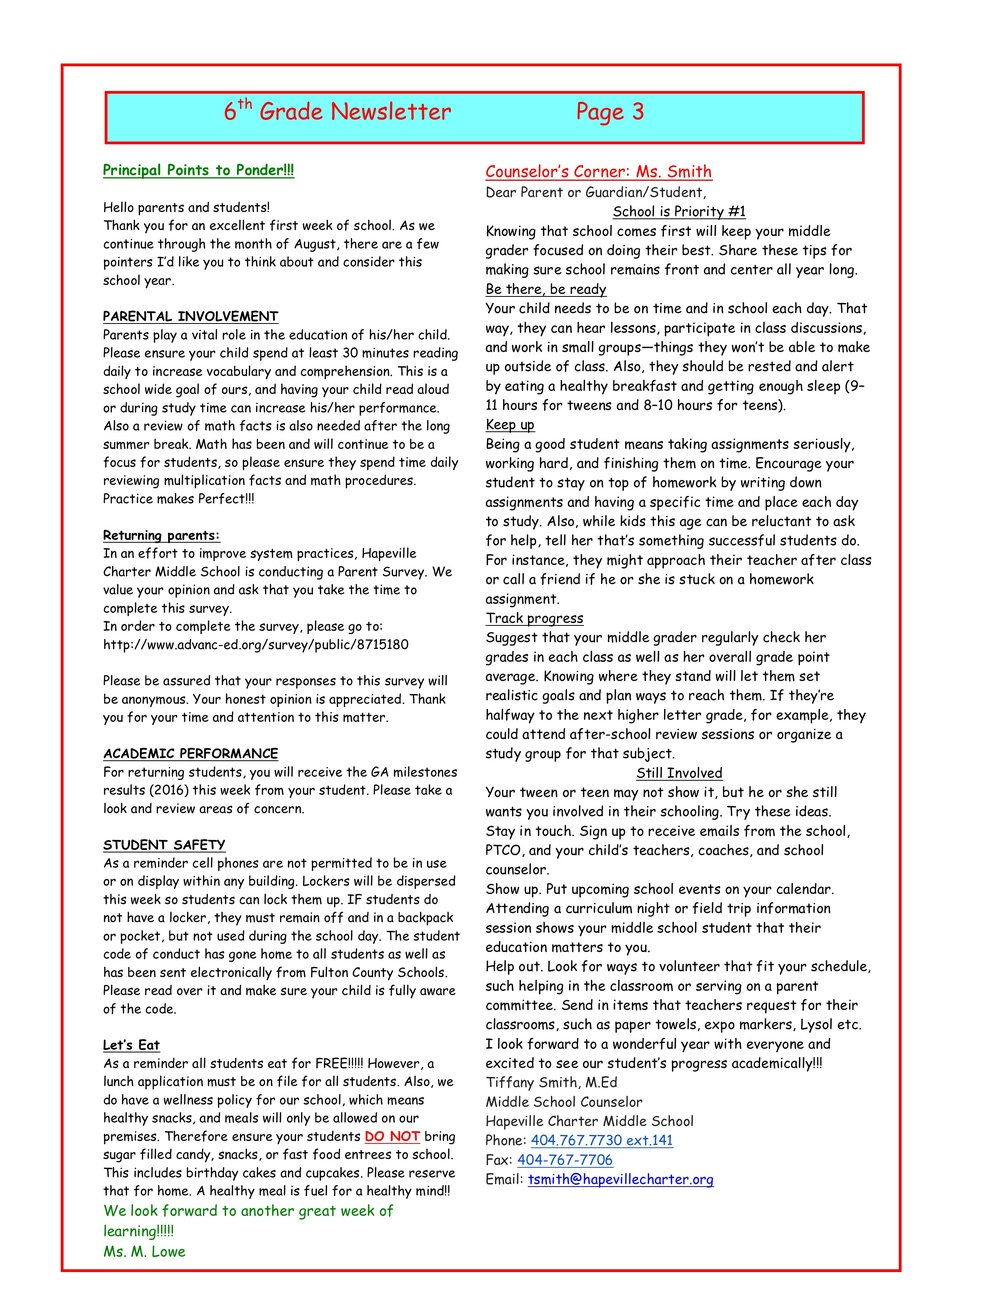 Newsletter Image6th Grade Newsletter 9-12 3.jpeg